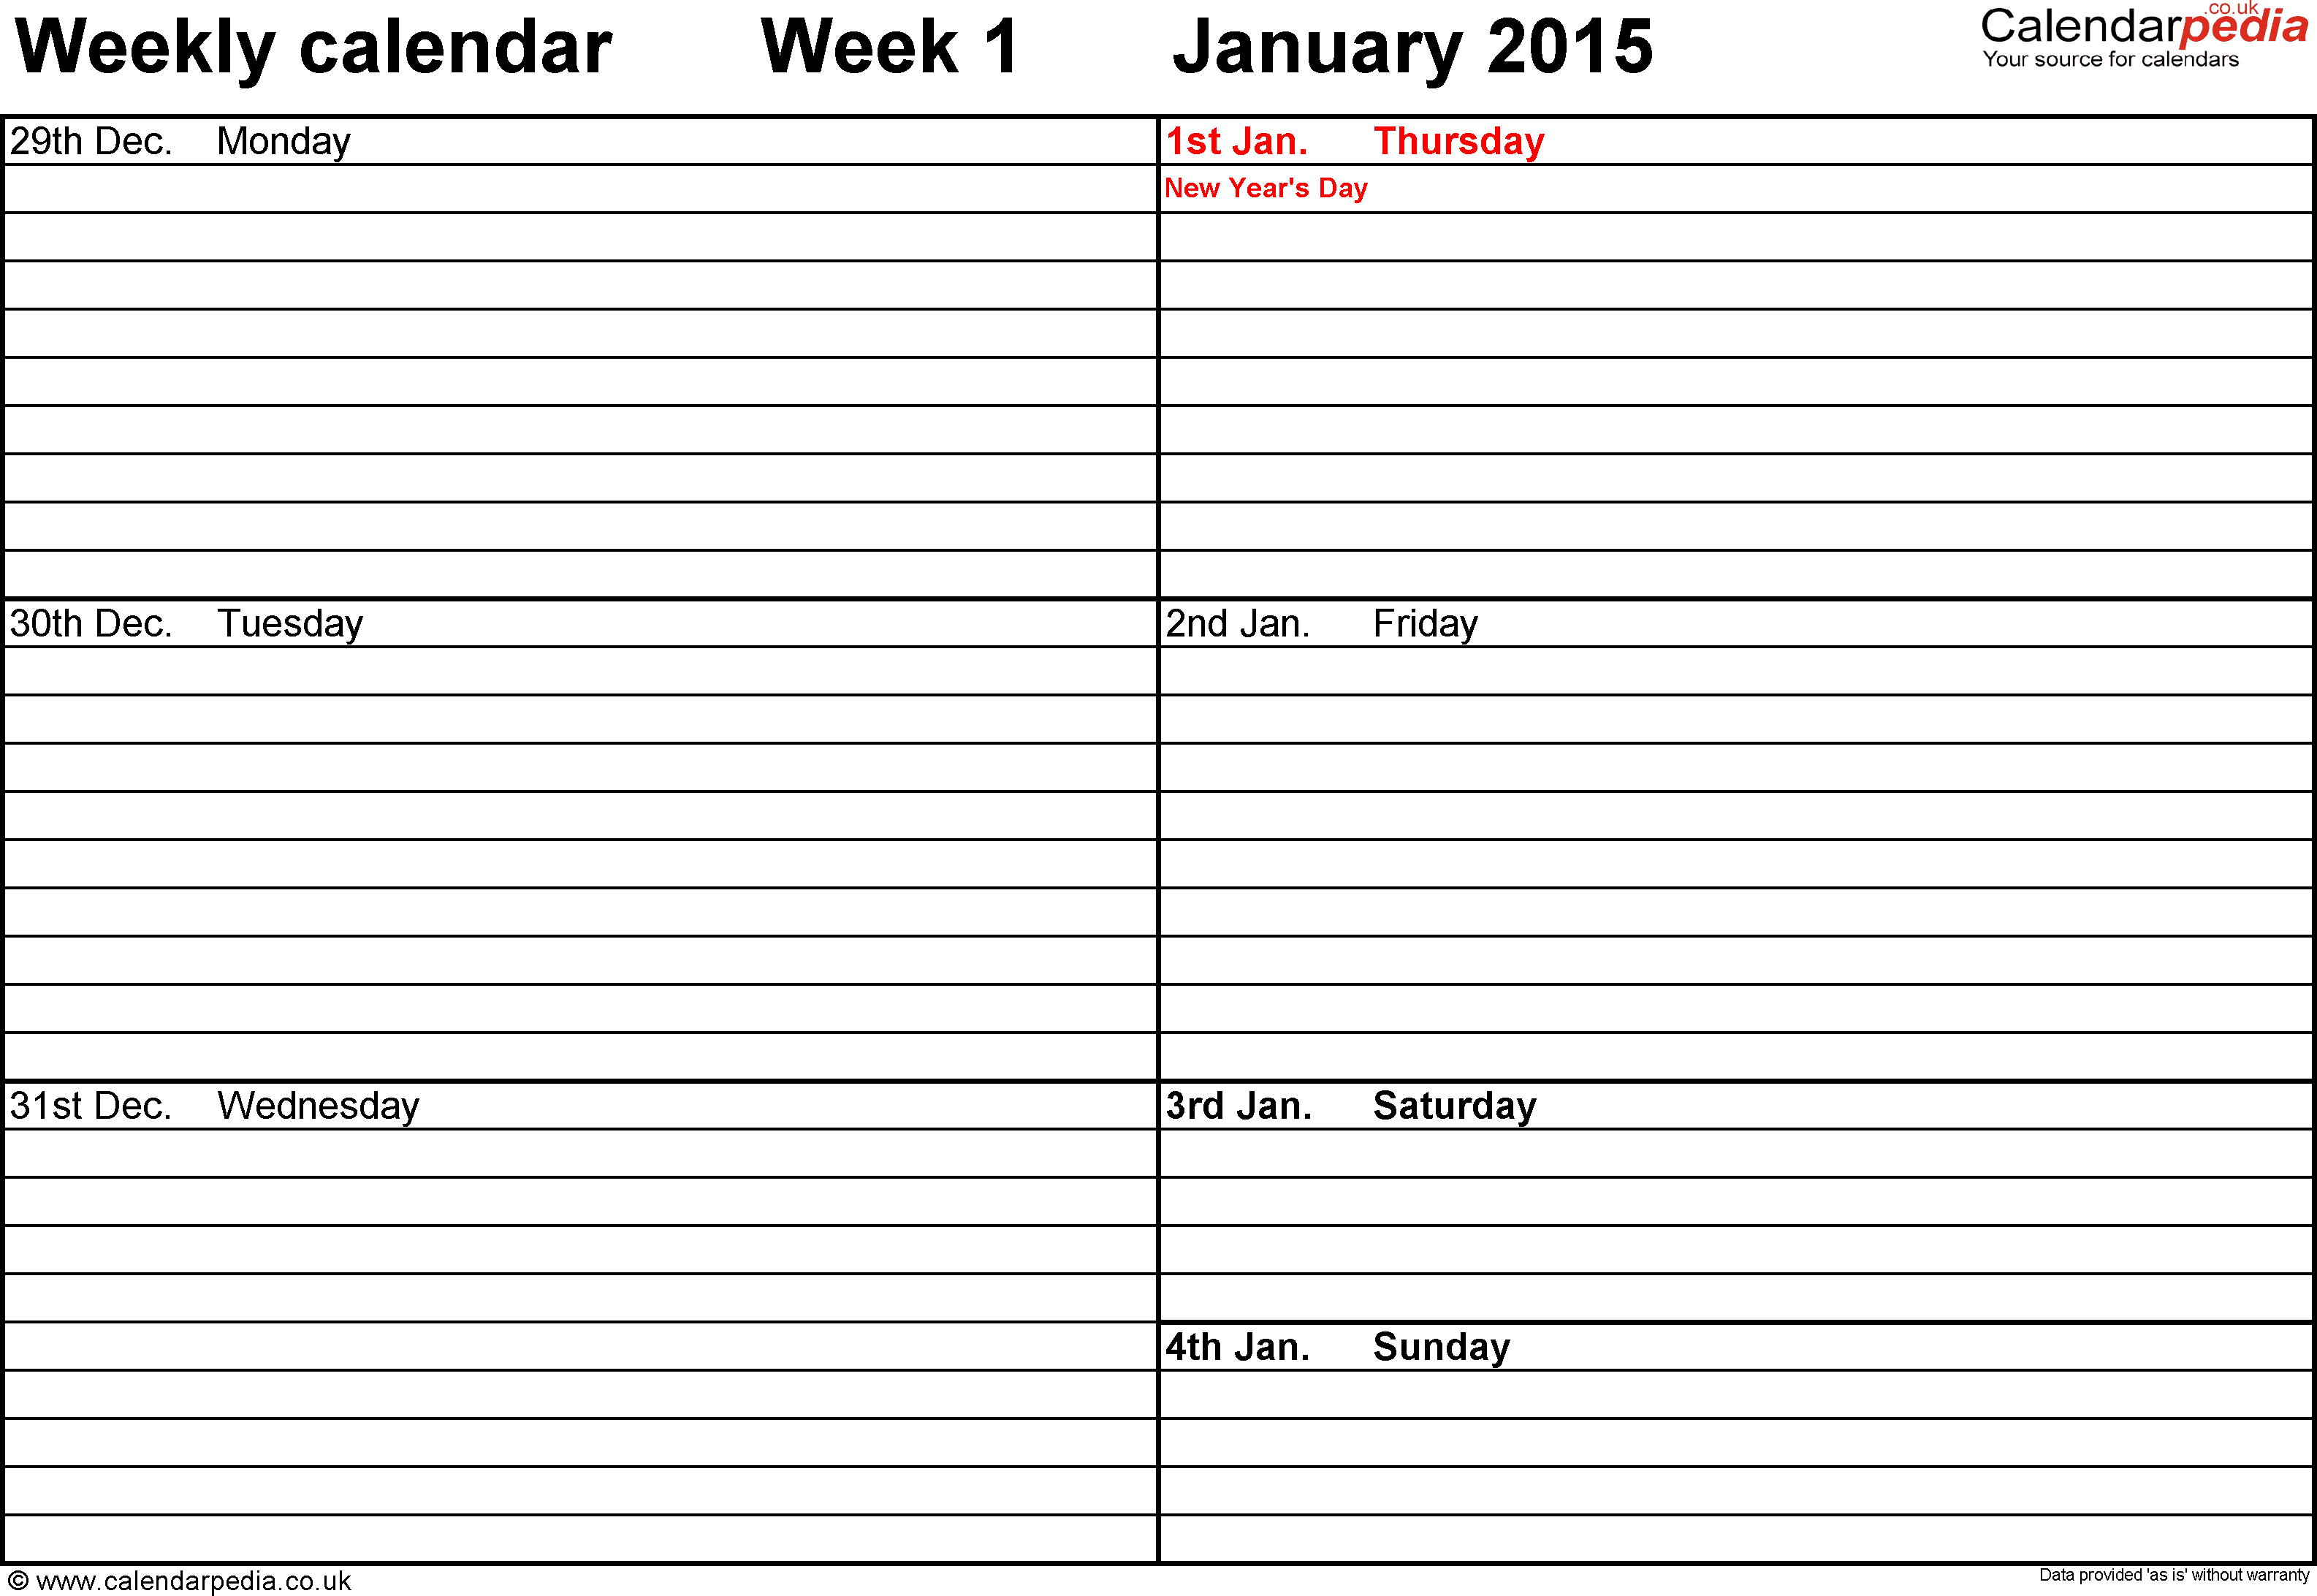 Weekly Calendar Excel : Weekly calendar uk free printable templates for excel